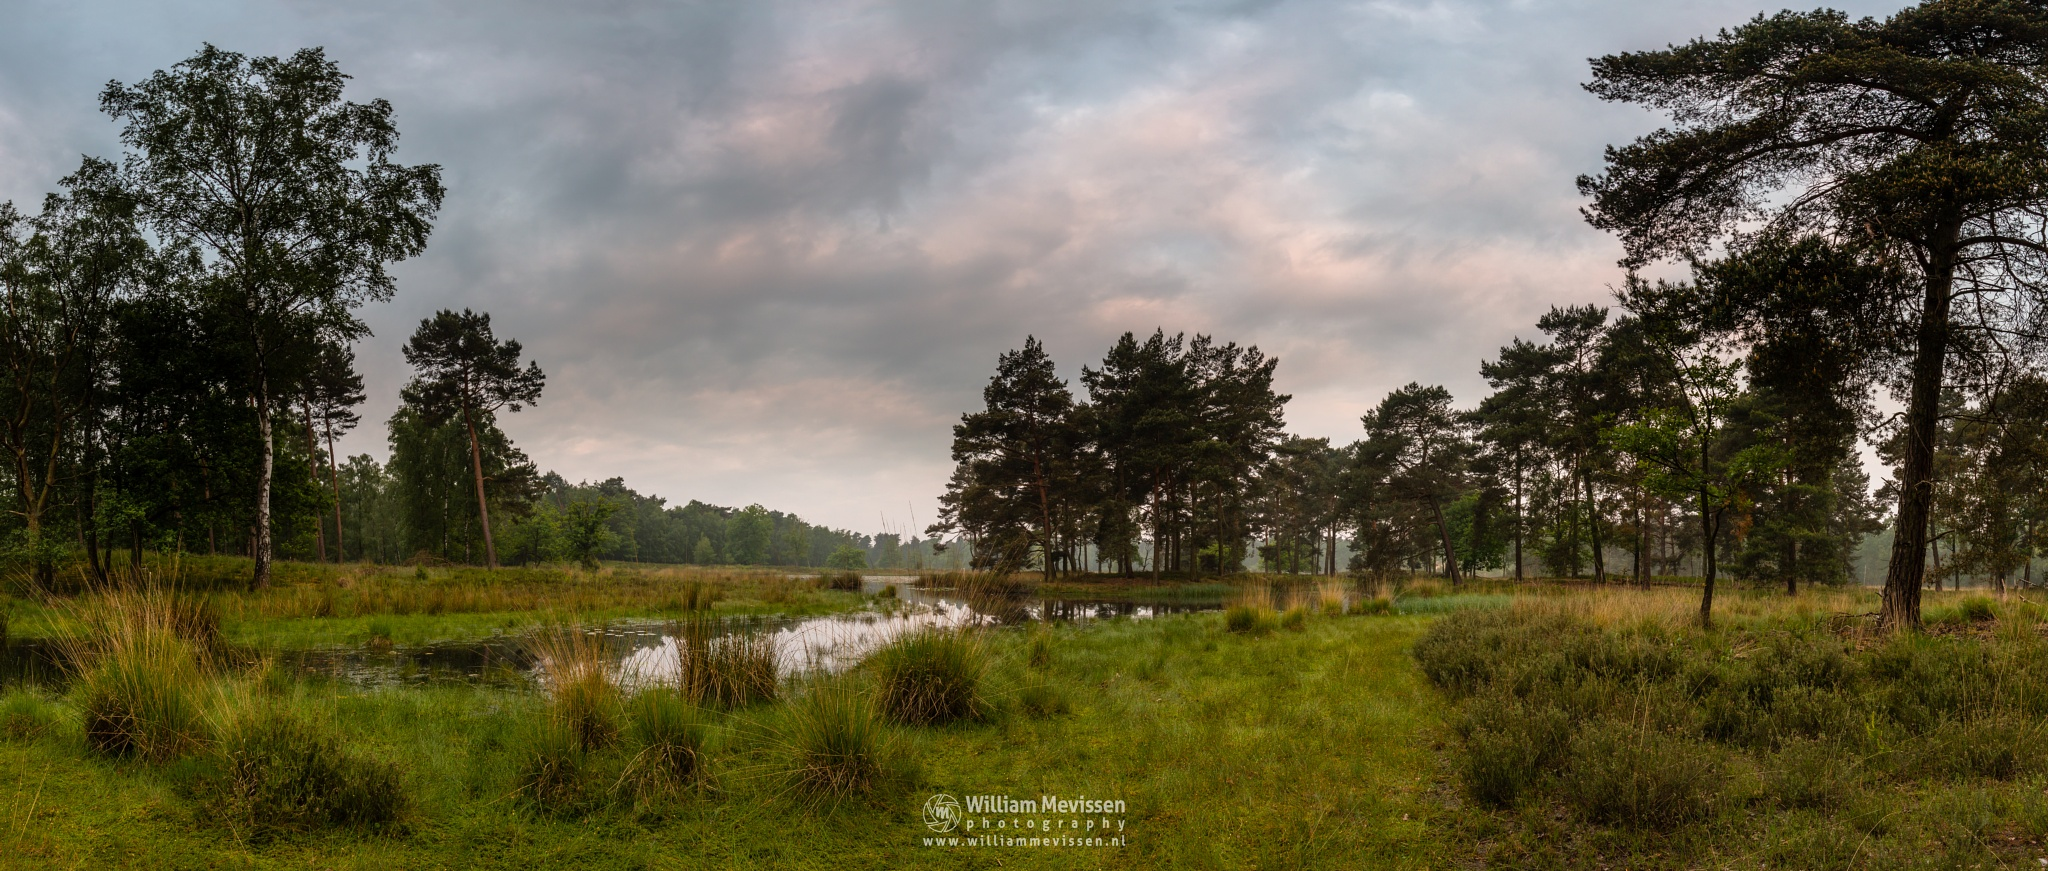 Photo in Landscape #ravenvennen #lomm #limburg #noord-limburg #arcen #nature #nature reserve #forest #woods #velden #netherlands #venlo #cloudy #fen #heatland #riverdunes #dune #swamp #painted #sky #clouds